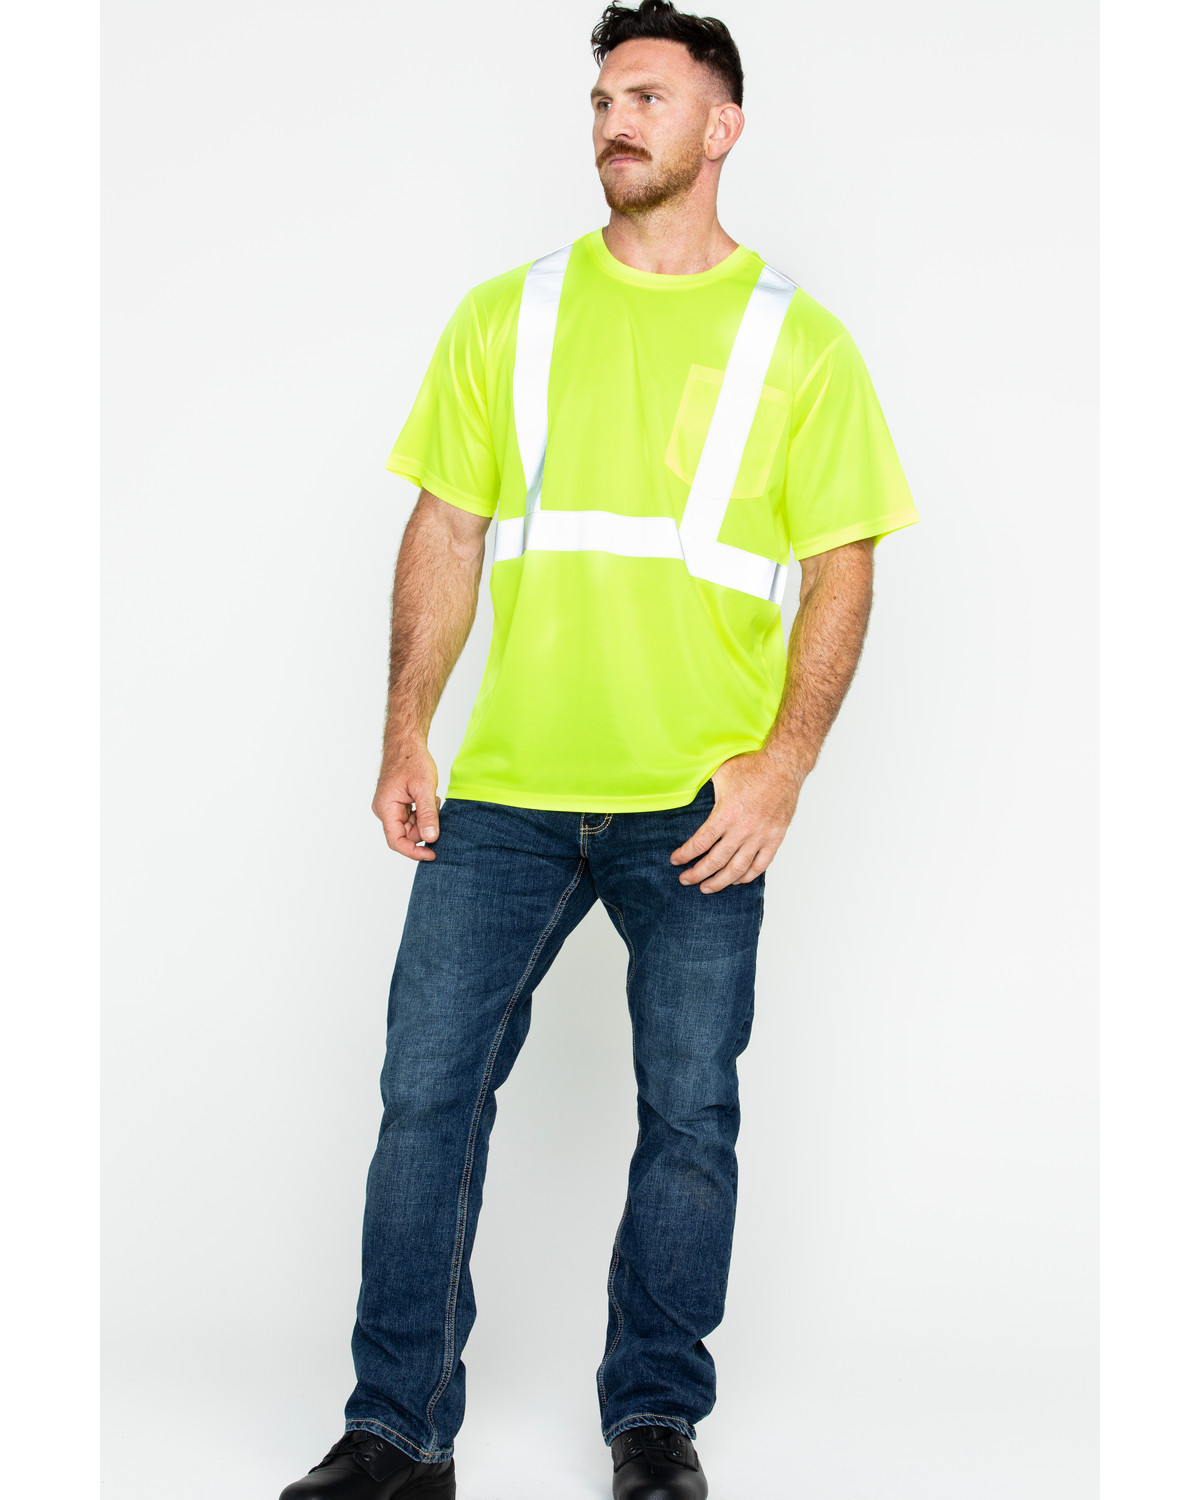 ce0dd829a60 Hawx® Men s Short Sleeve Reflective Work Tee - Big   Tall - Country ...